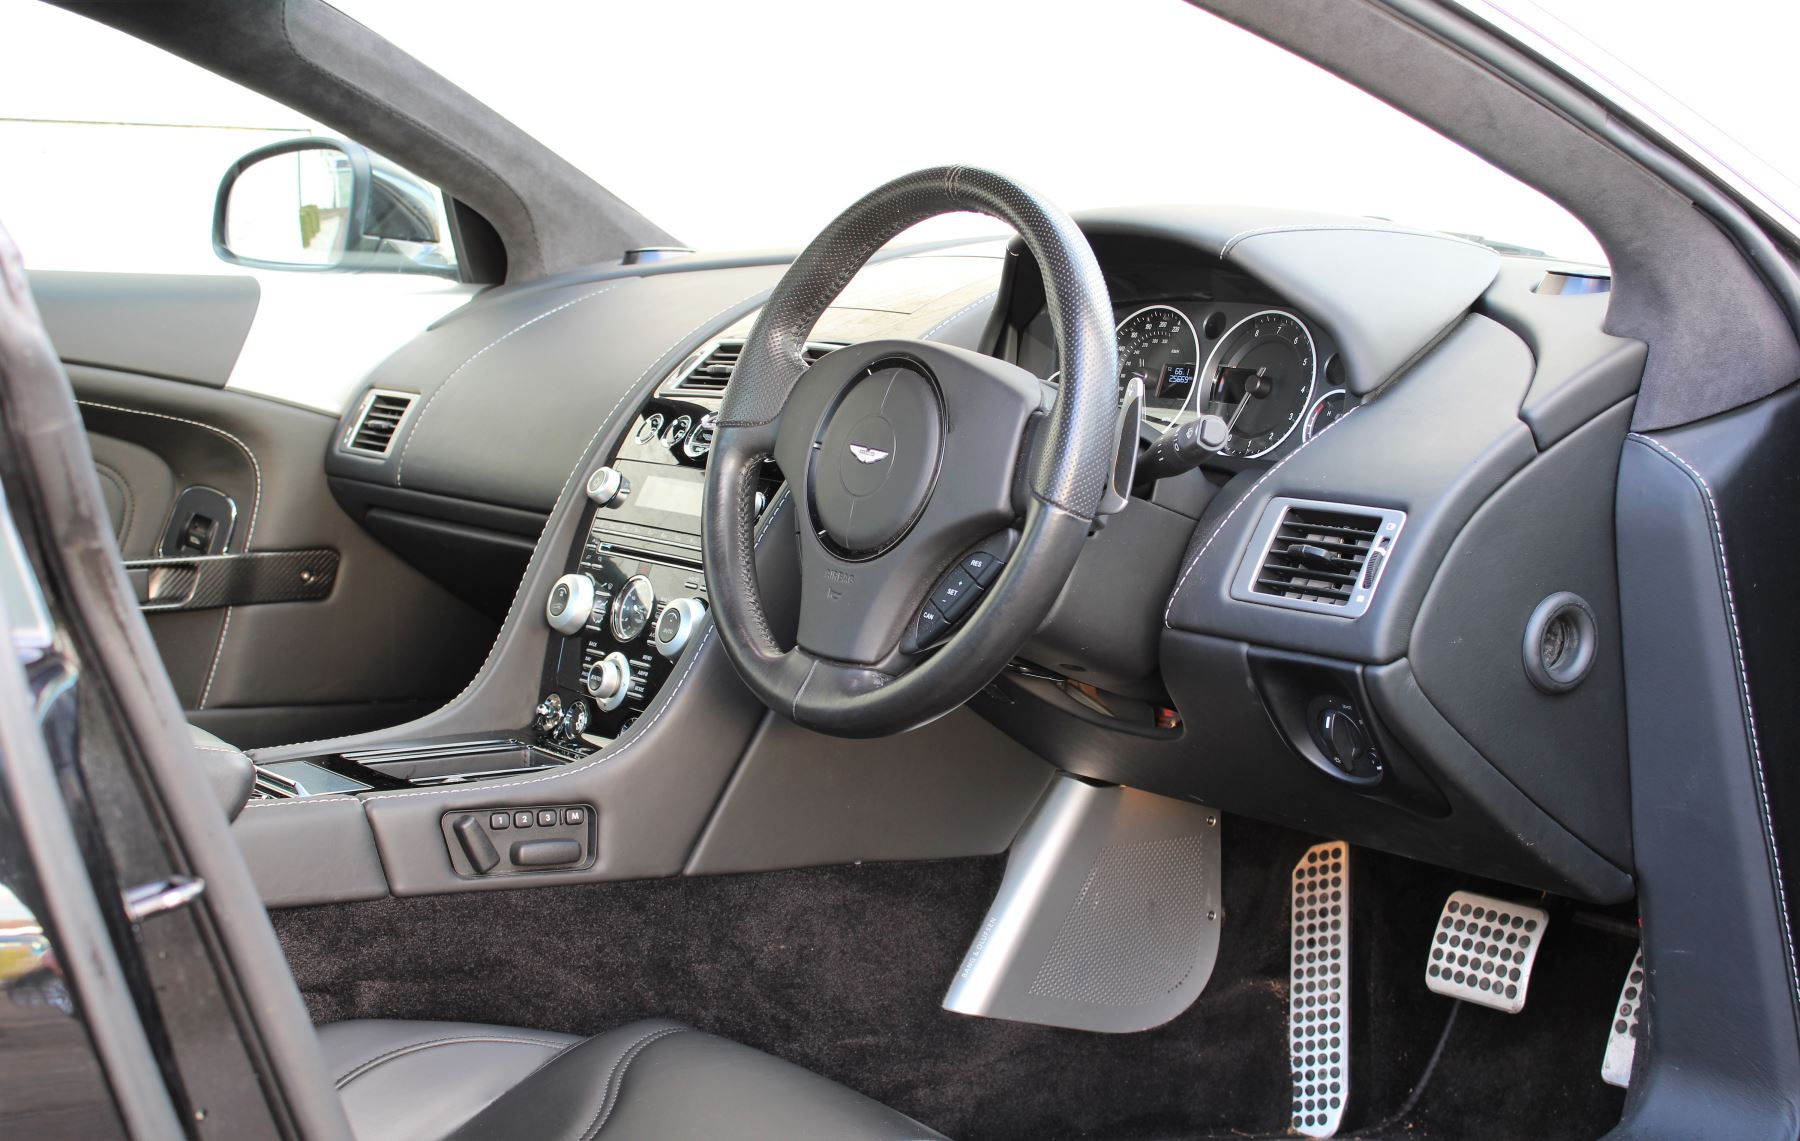 Aston Martin DBS V12 CARBON EDITION 2dr Touchtronic image 11